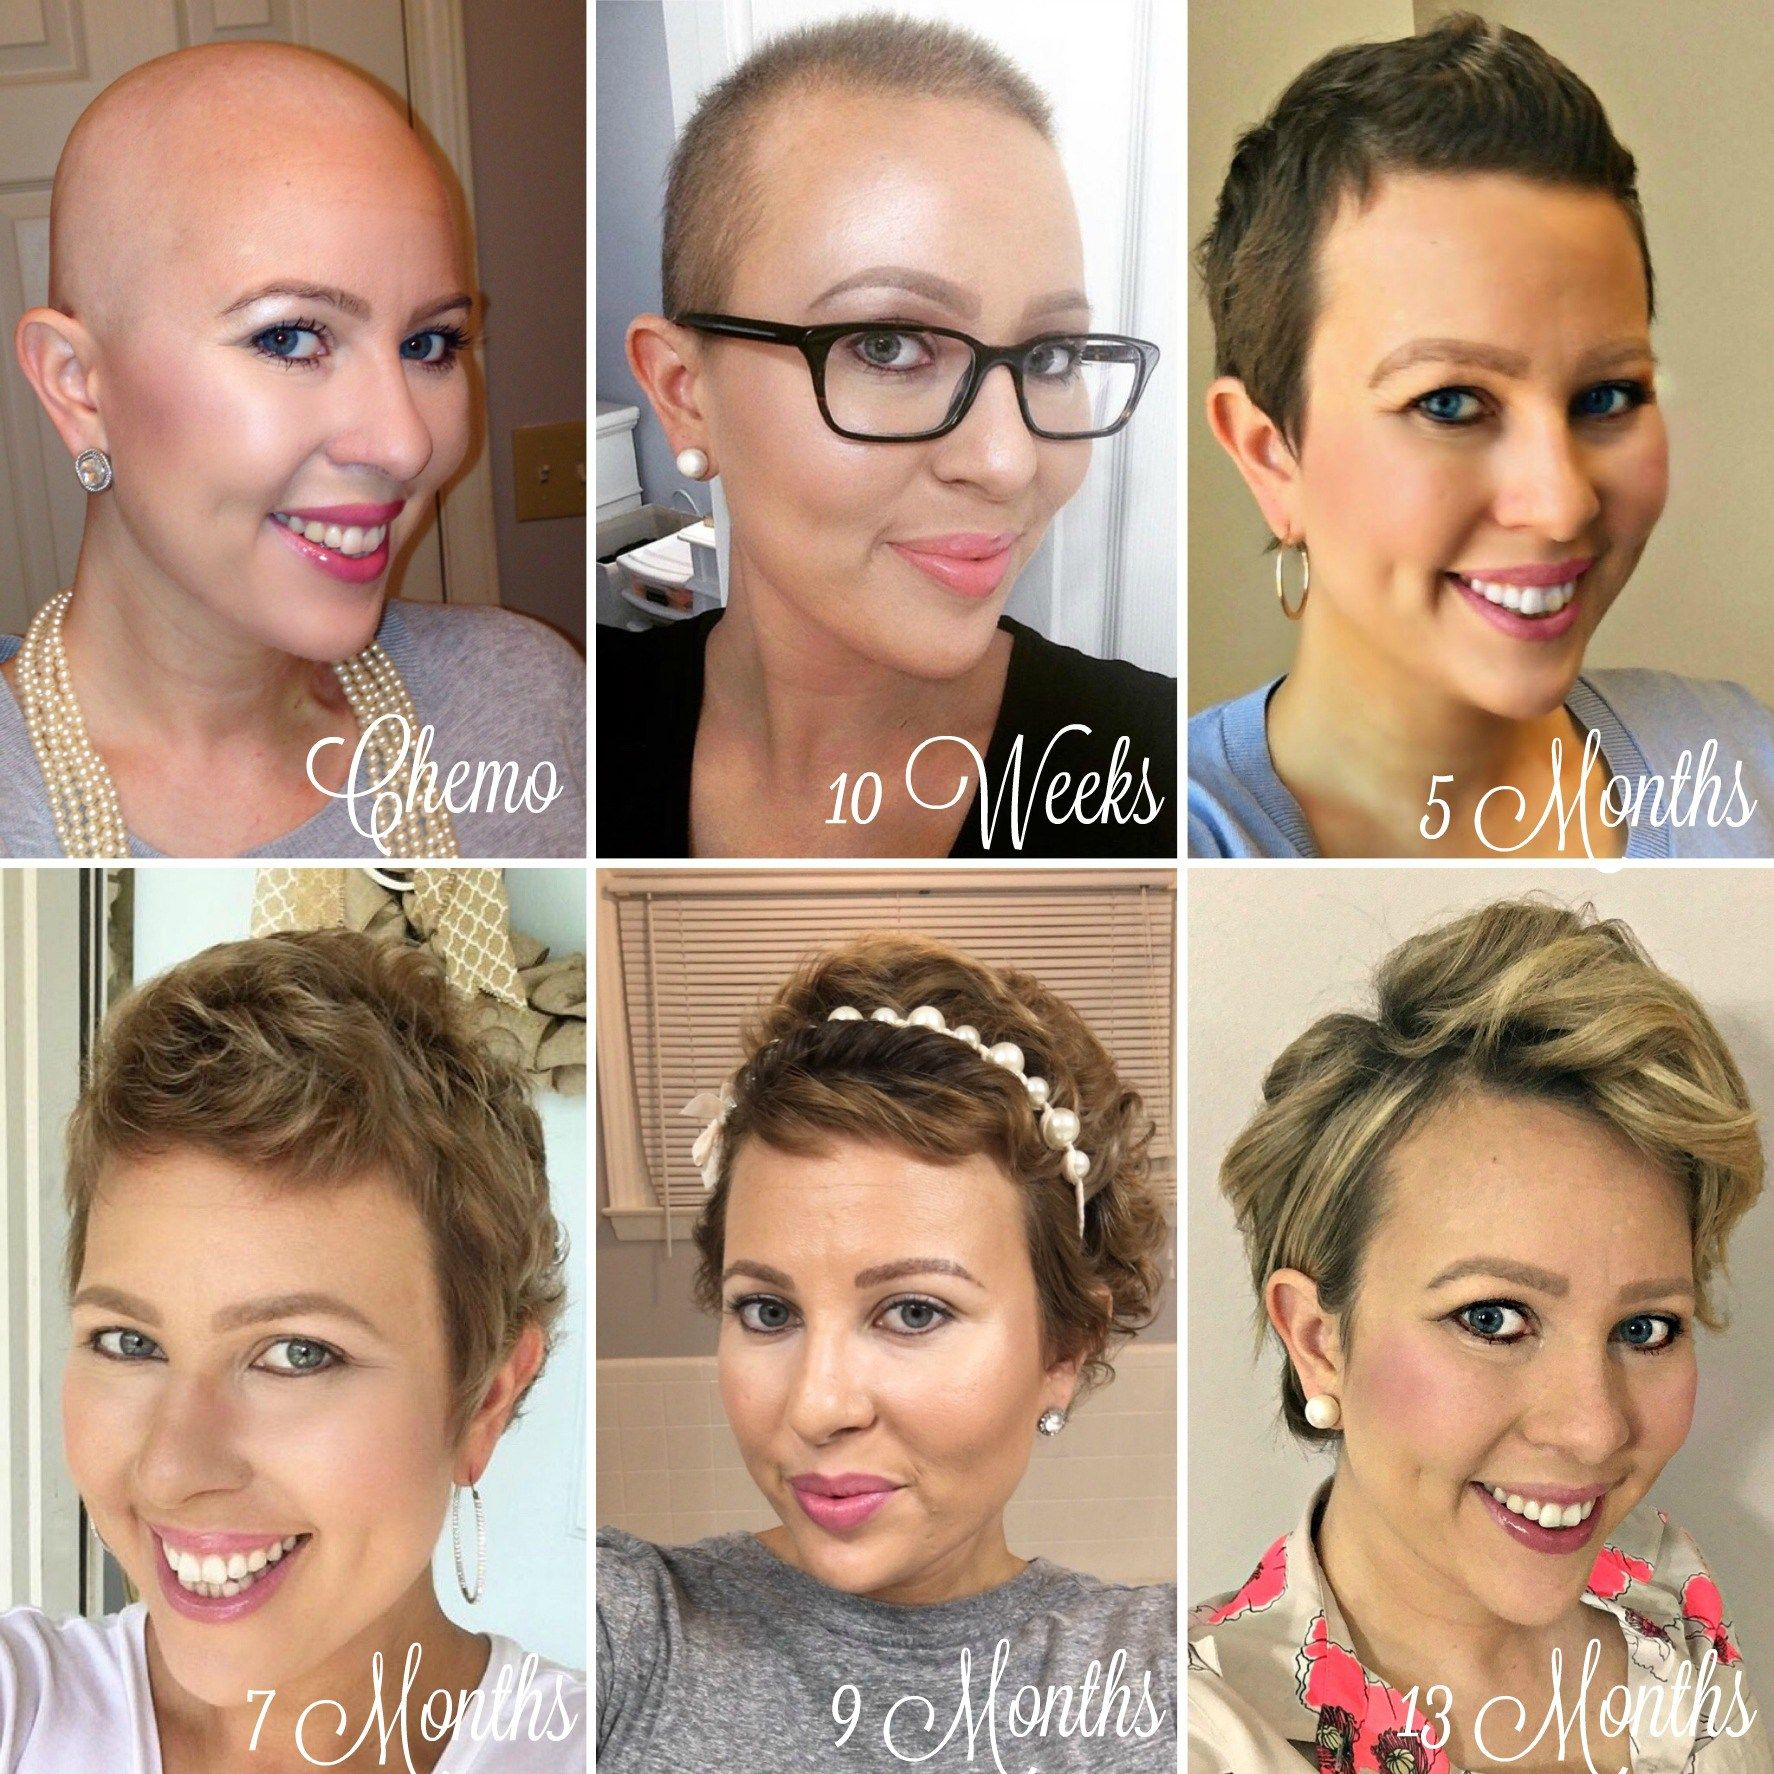 Hair Regrowth Pixie Bob Buzzcut Curls Chemo Curls Short Hair Chemotherapy Hair Growth Stages Hair Growth After Chemo Hair Growth Pictures